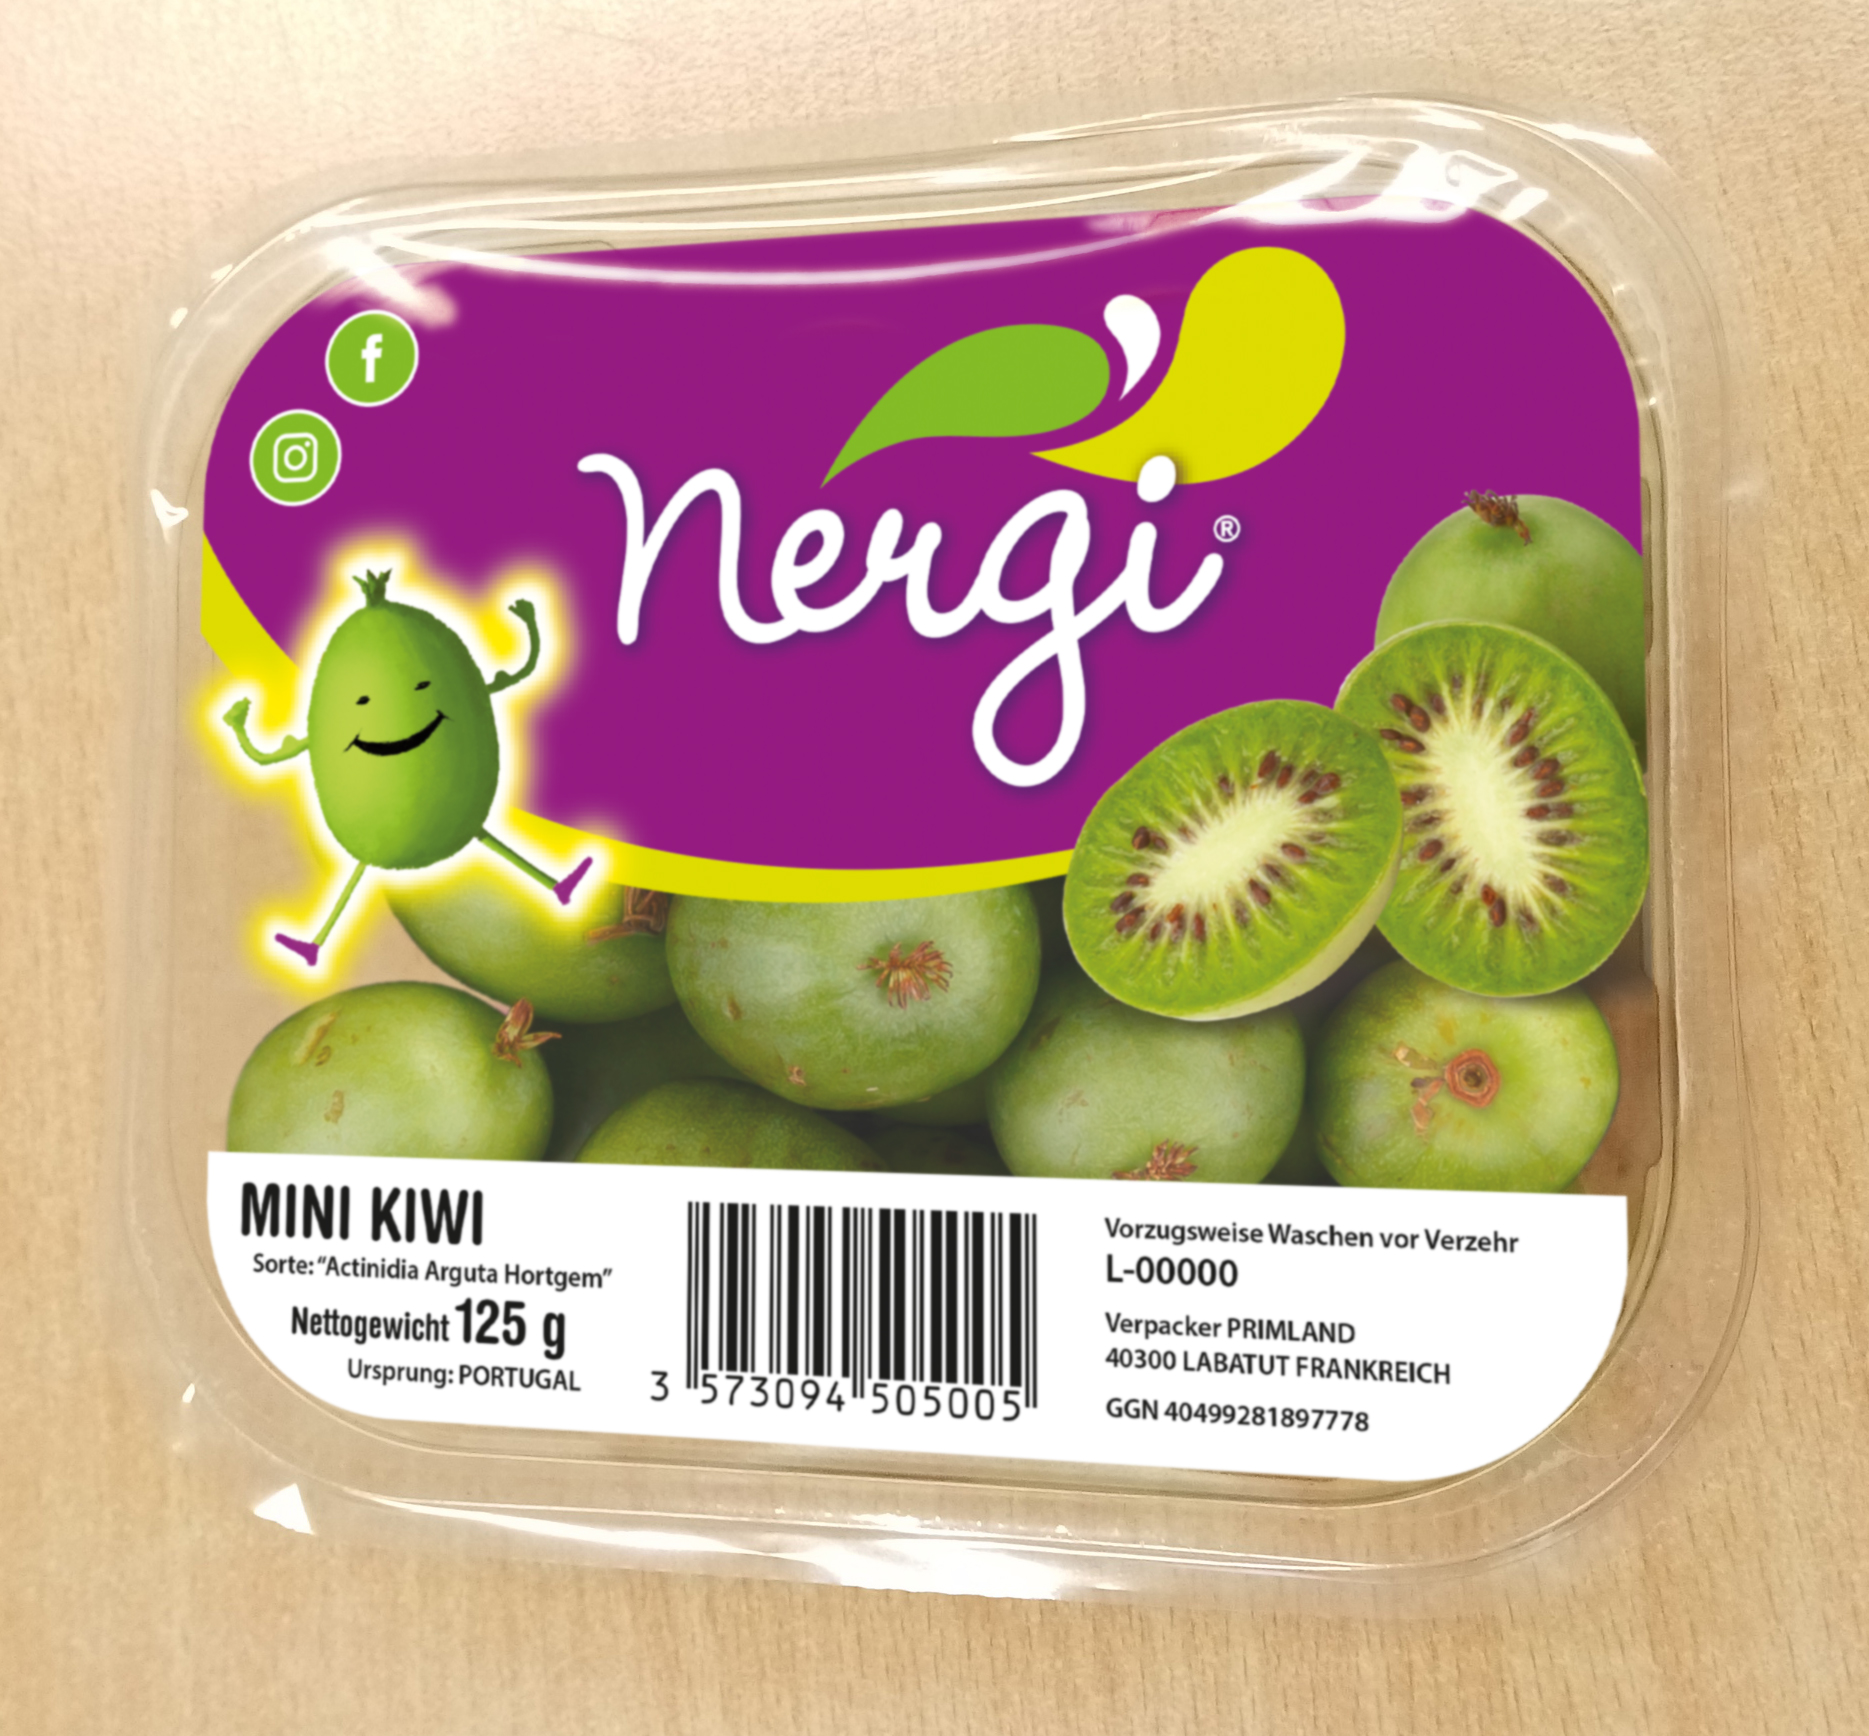 NERGI®: increased volumes and commitment to sustainable development